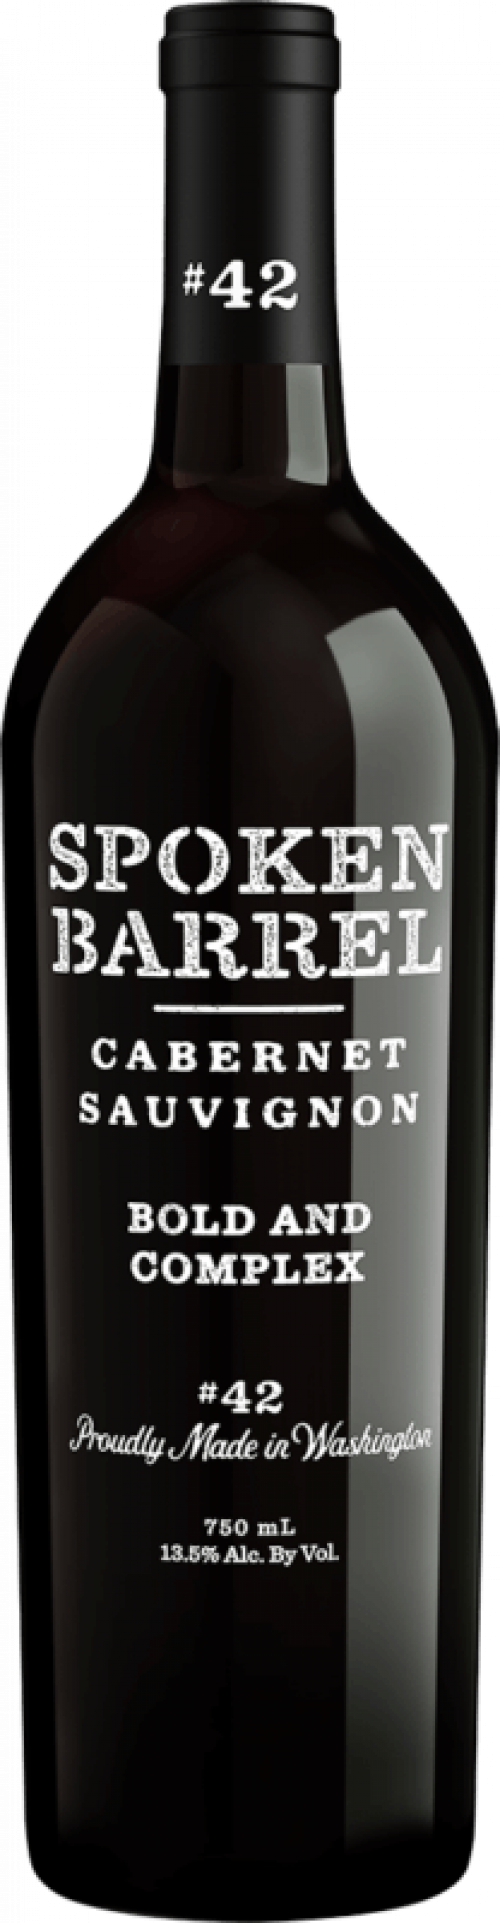 Spoken Barrel Cabernet Sauvignon 750ml